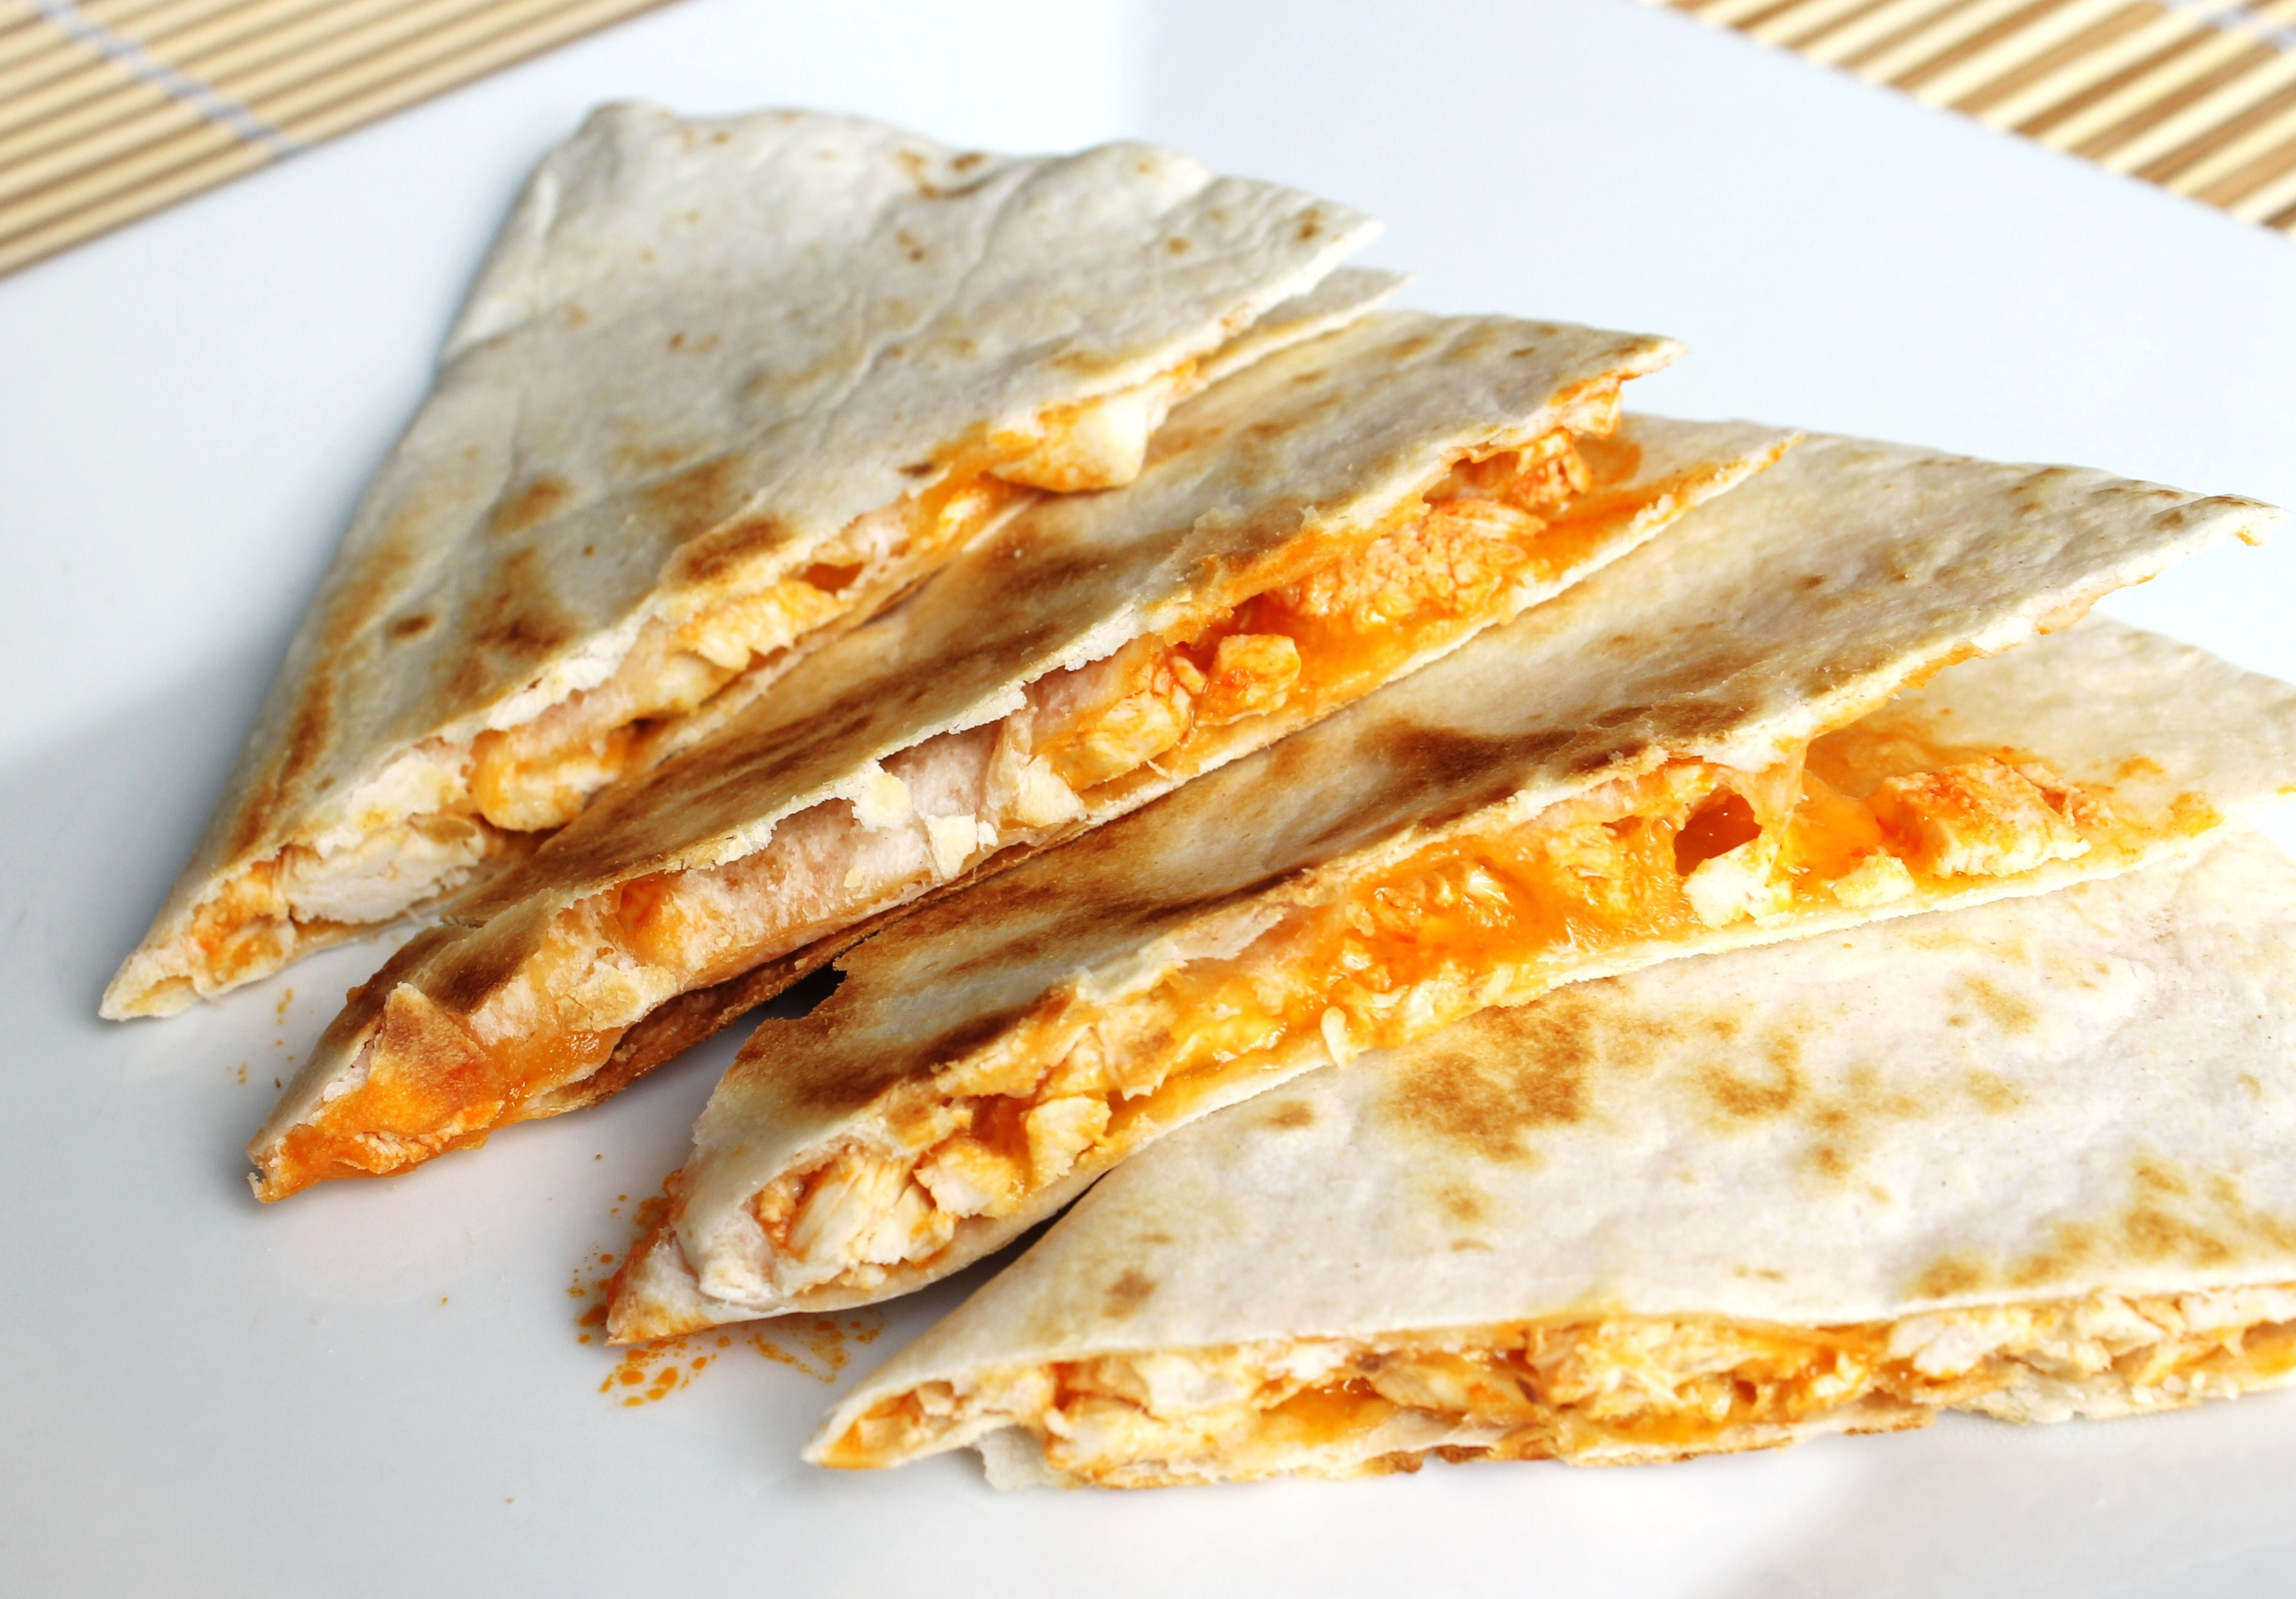 Chicken And Cheese Quesadilla Recipe Food Network